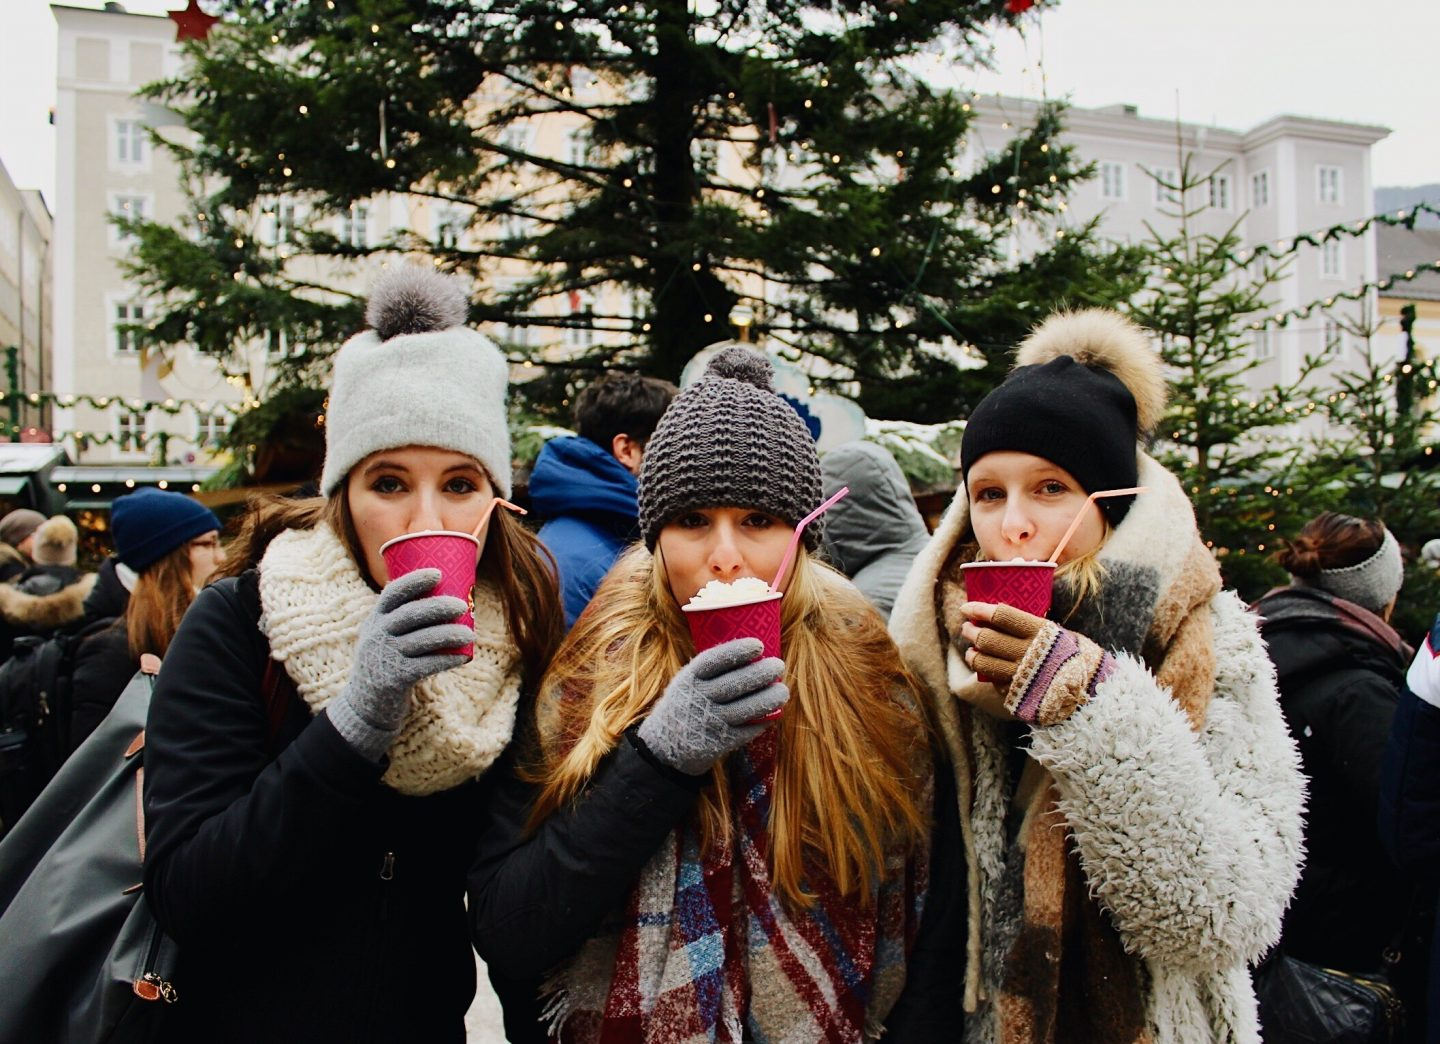 Drinking hot chocolate at a Christmas market in Salzburg, Austria